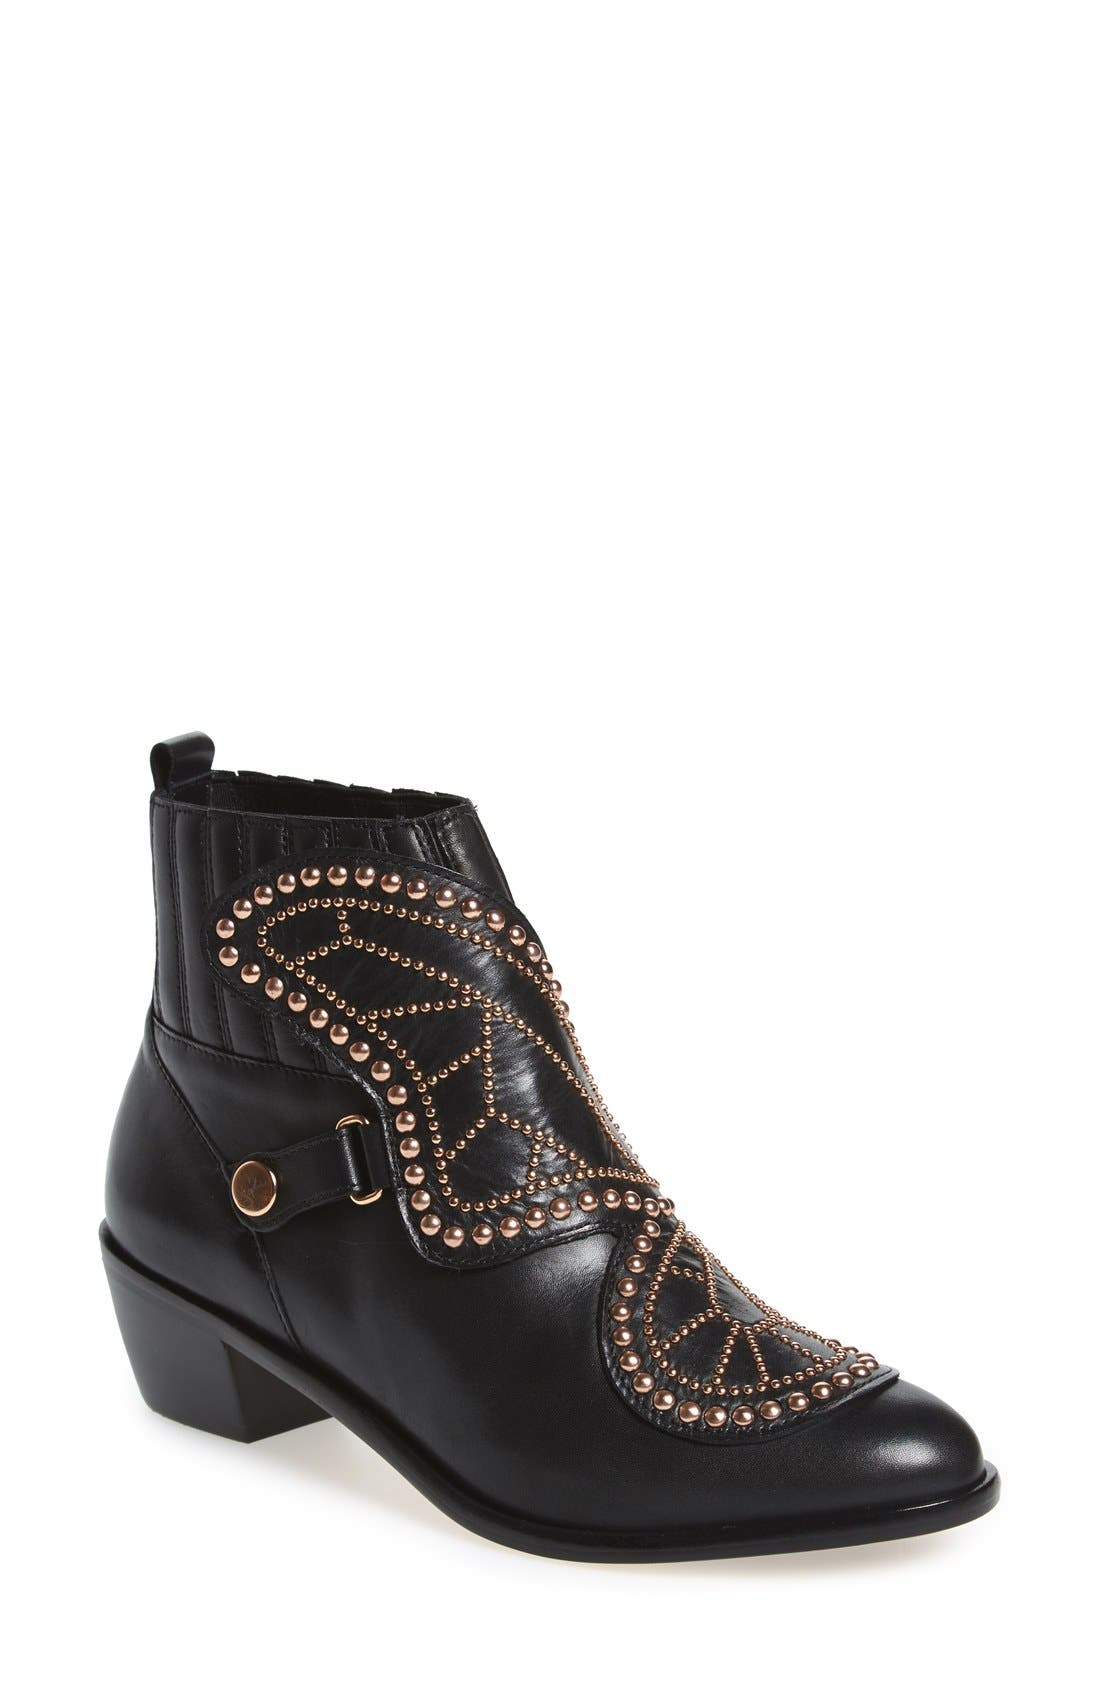 'Karina - Butterfly' Bootie,                             Main thumbnail 1, color,                             001